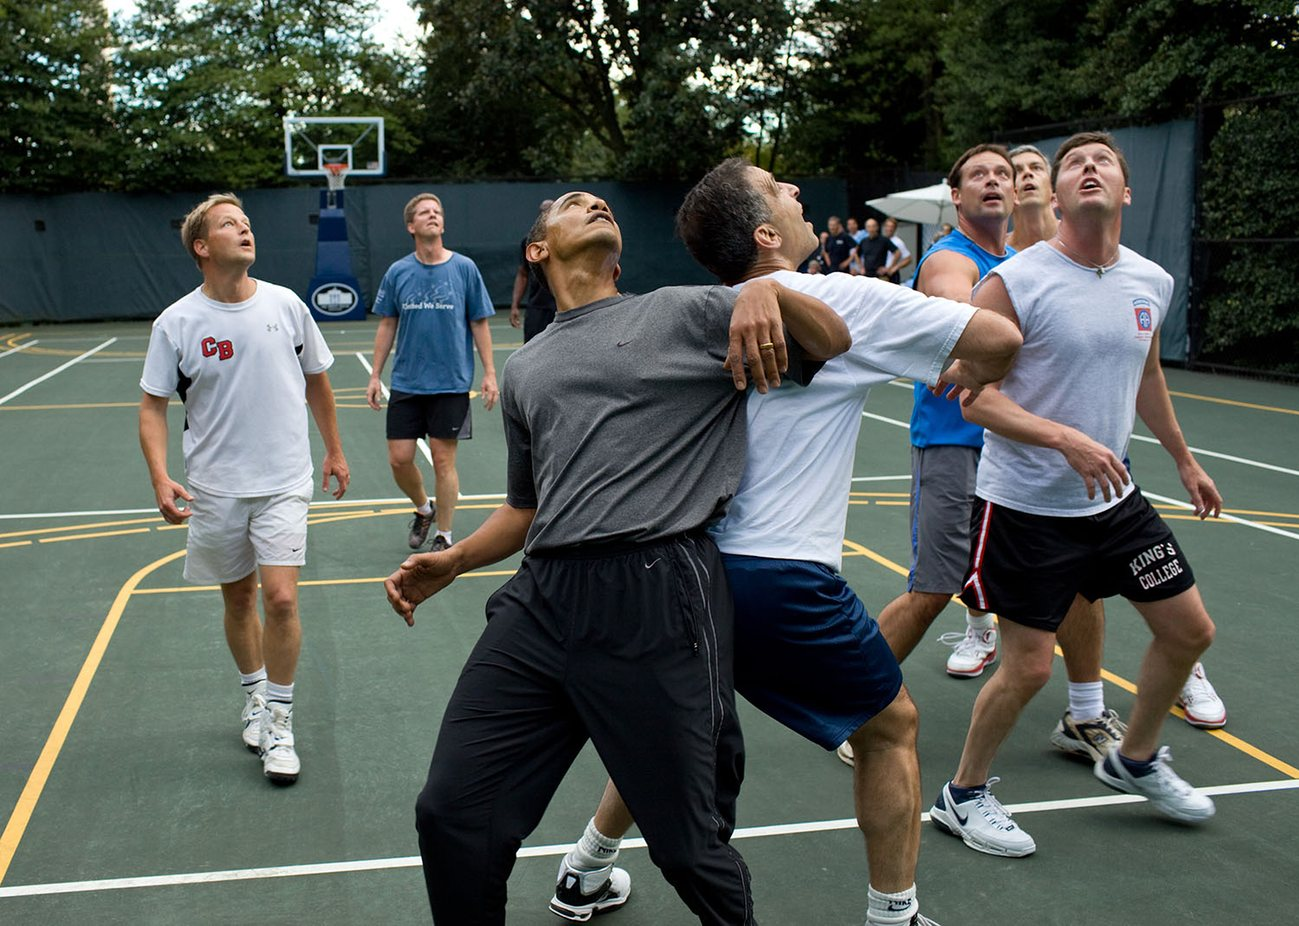 Oct 2009 – The president jostles with congressmen during a basketball game at the White House.